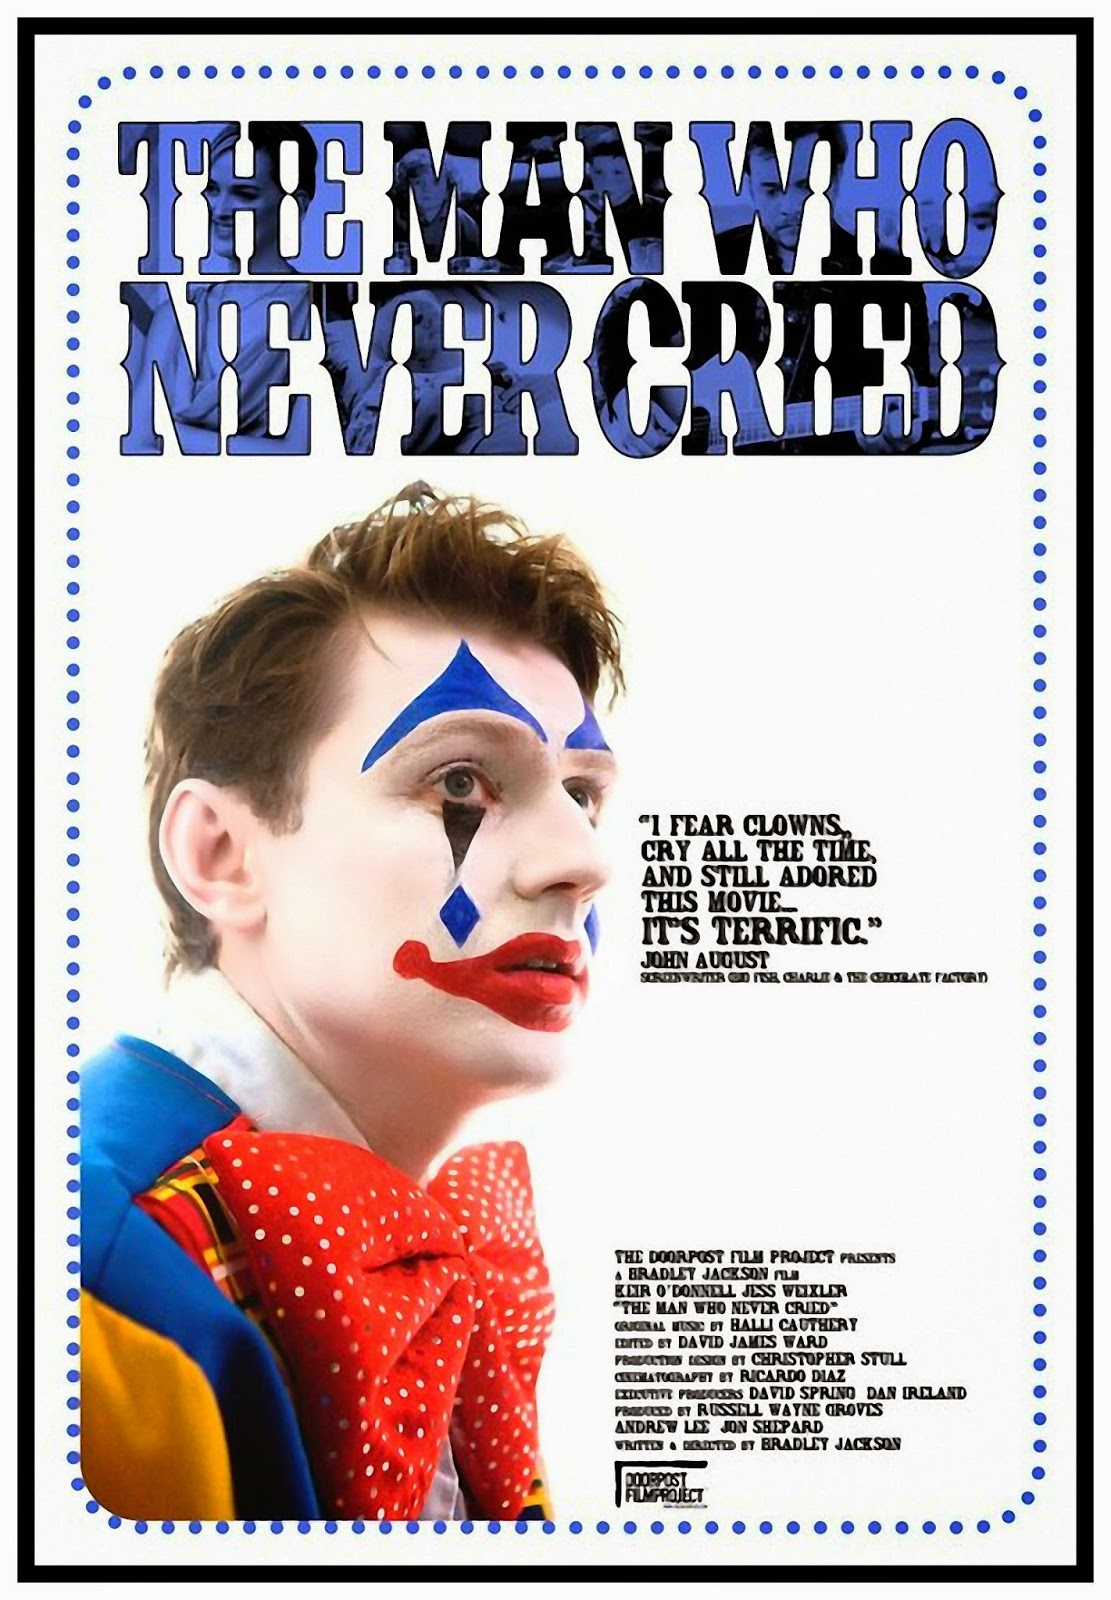 http://www.cinedemedianoche.cl/2016/09/the-man-who-never-cried-2011.html